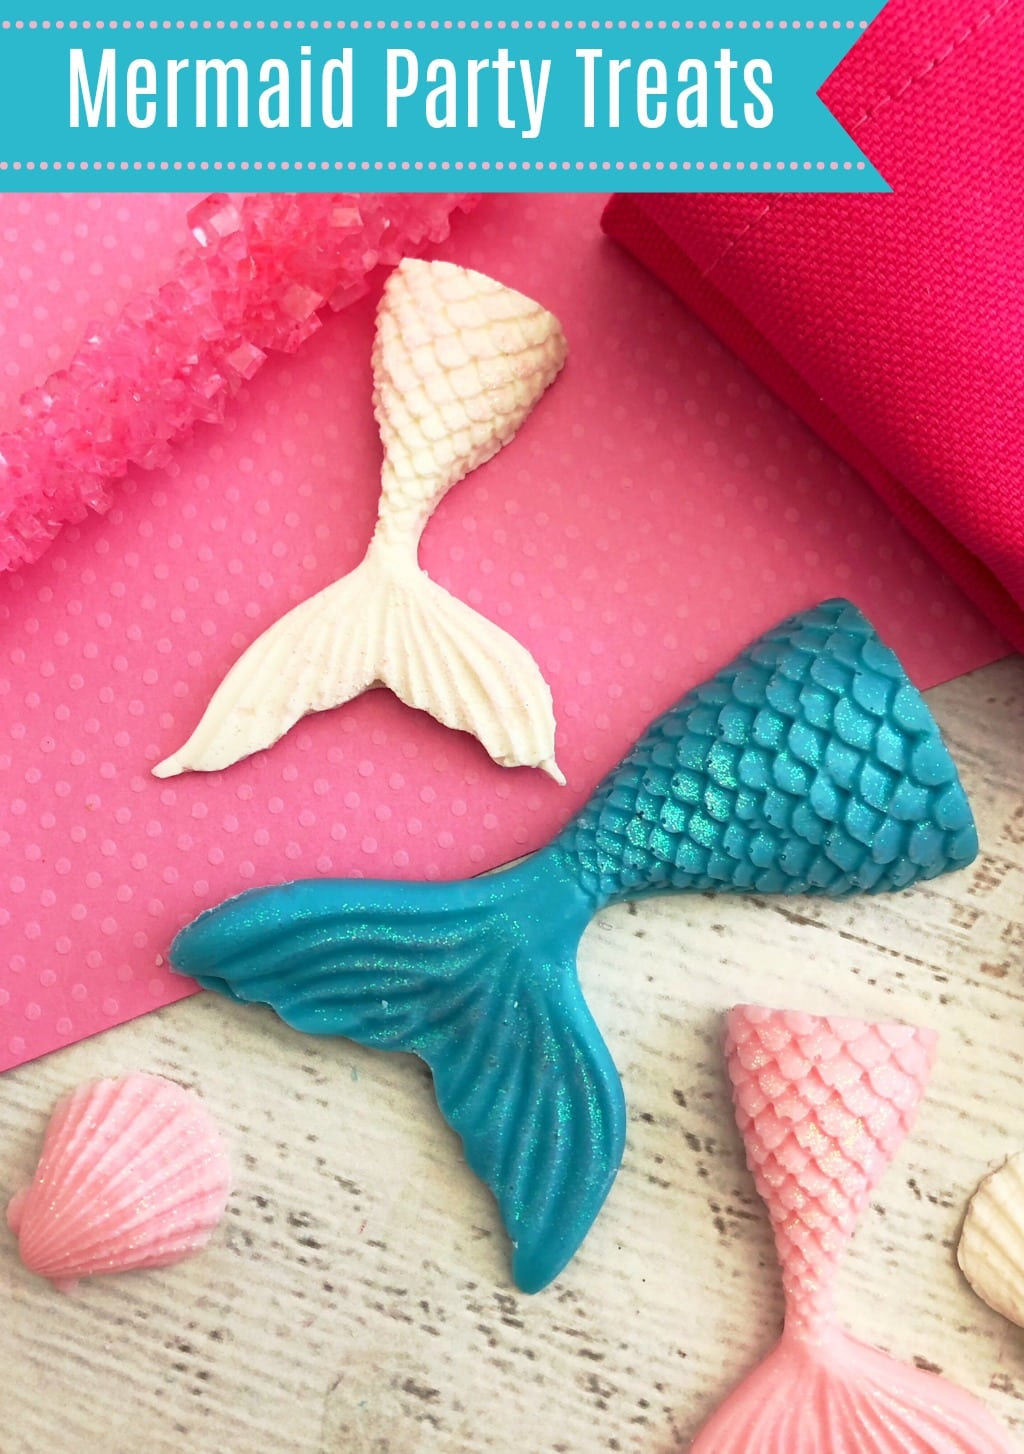 mermaid party treats